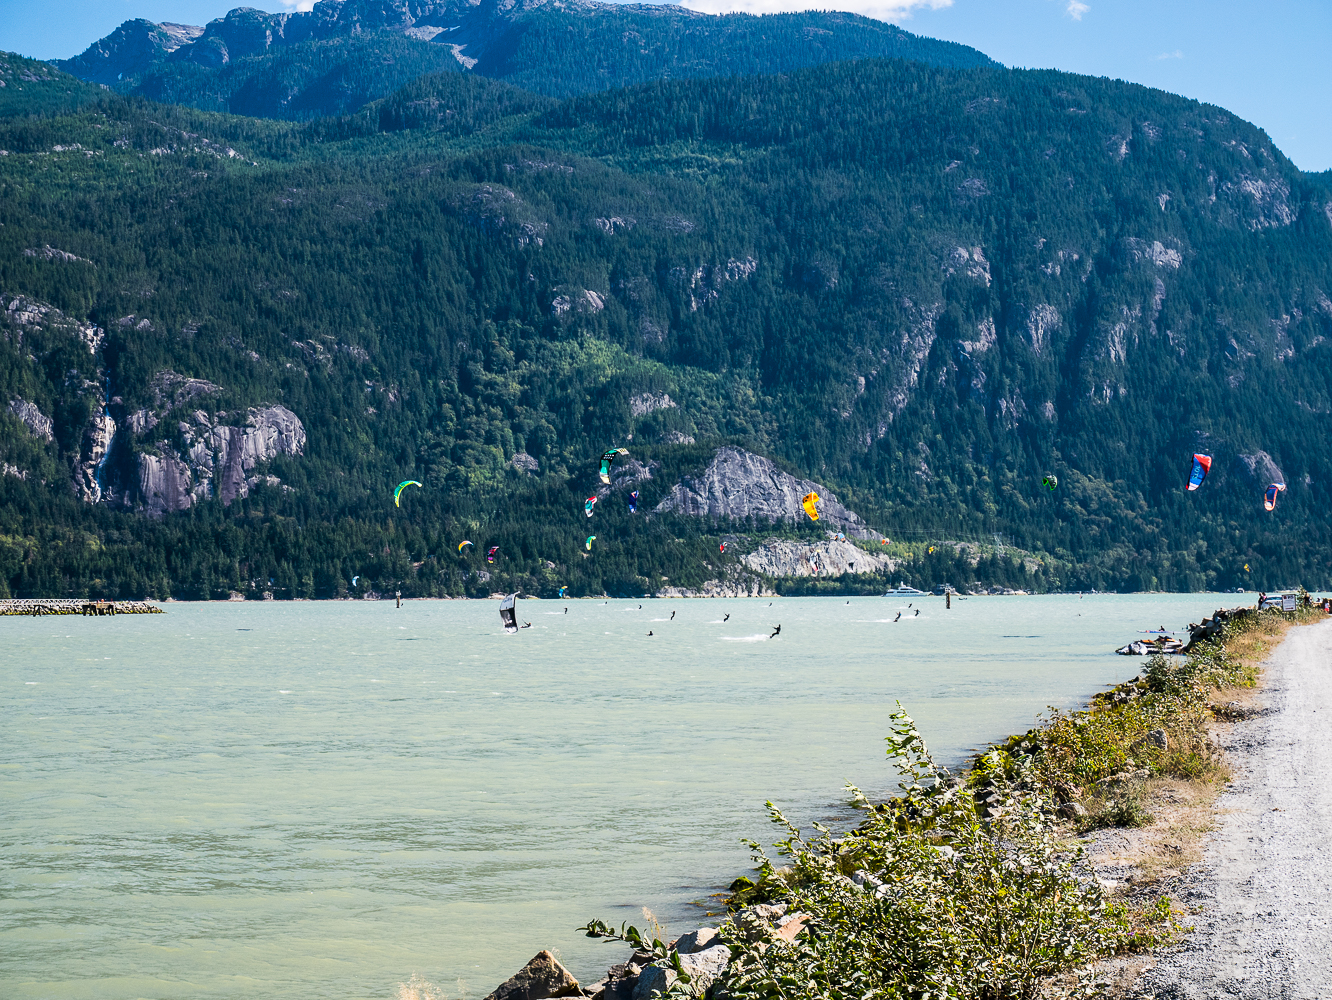 Kiteboarding in Squamish